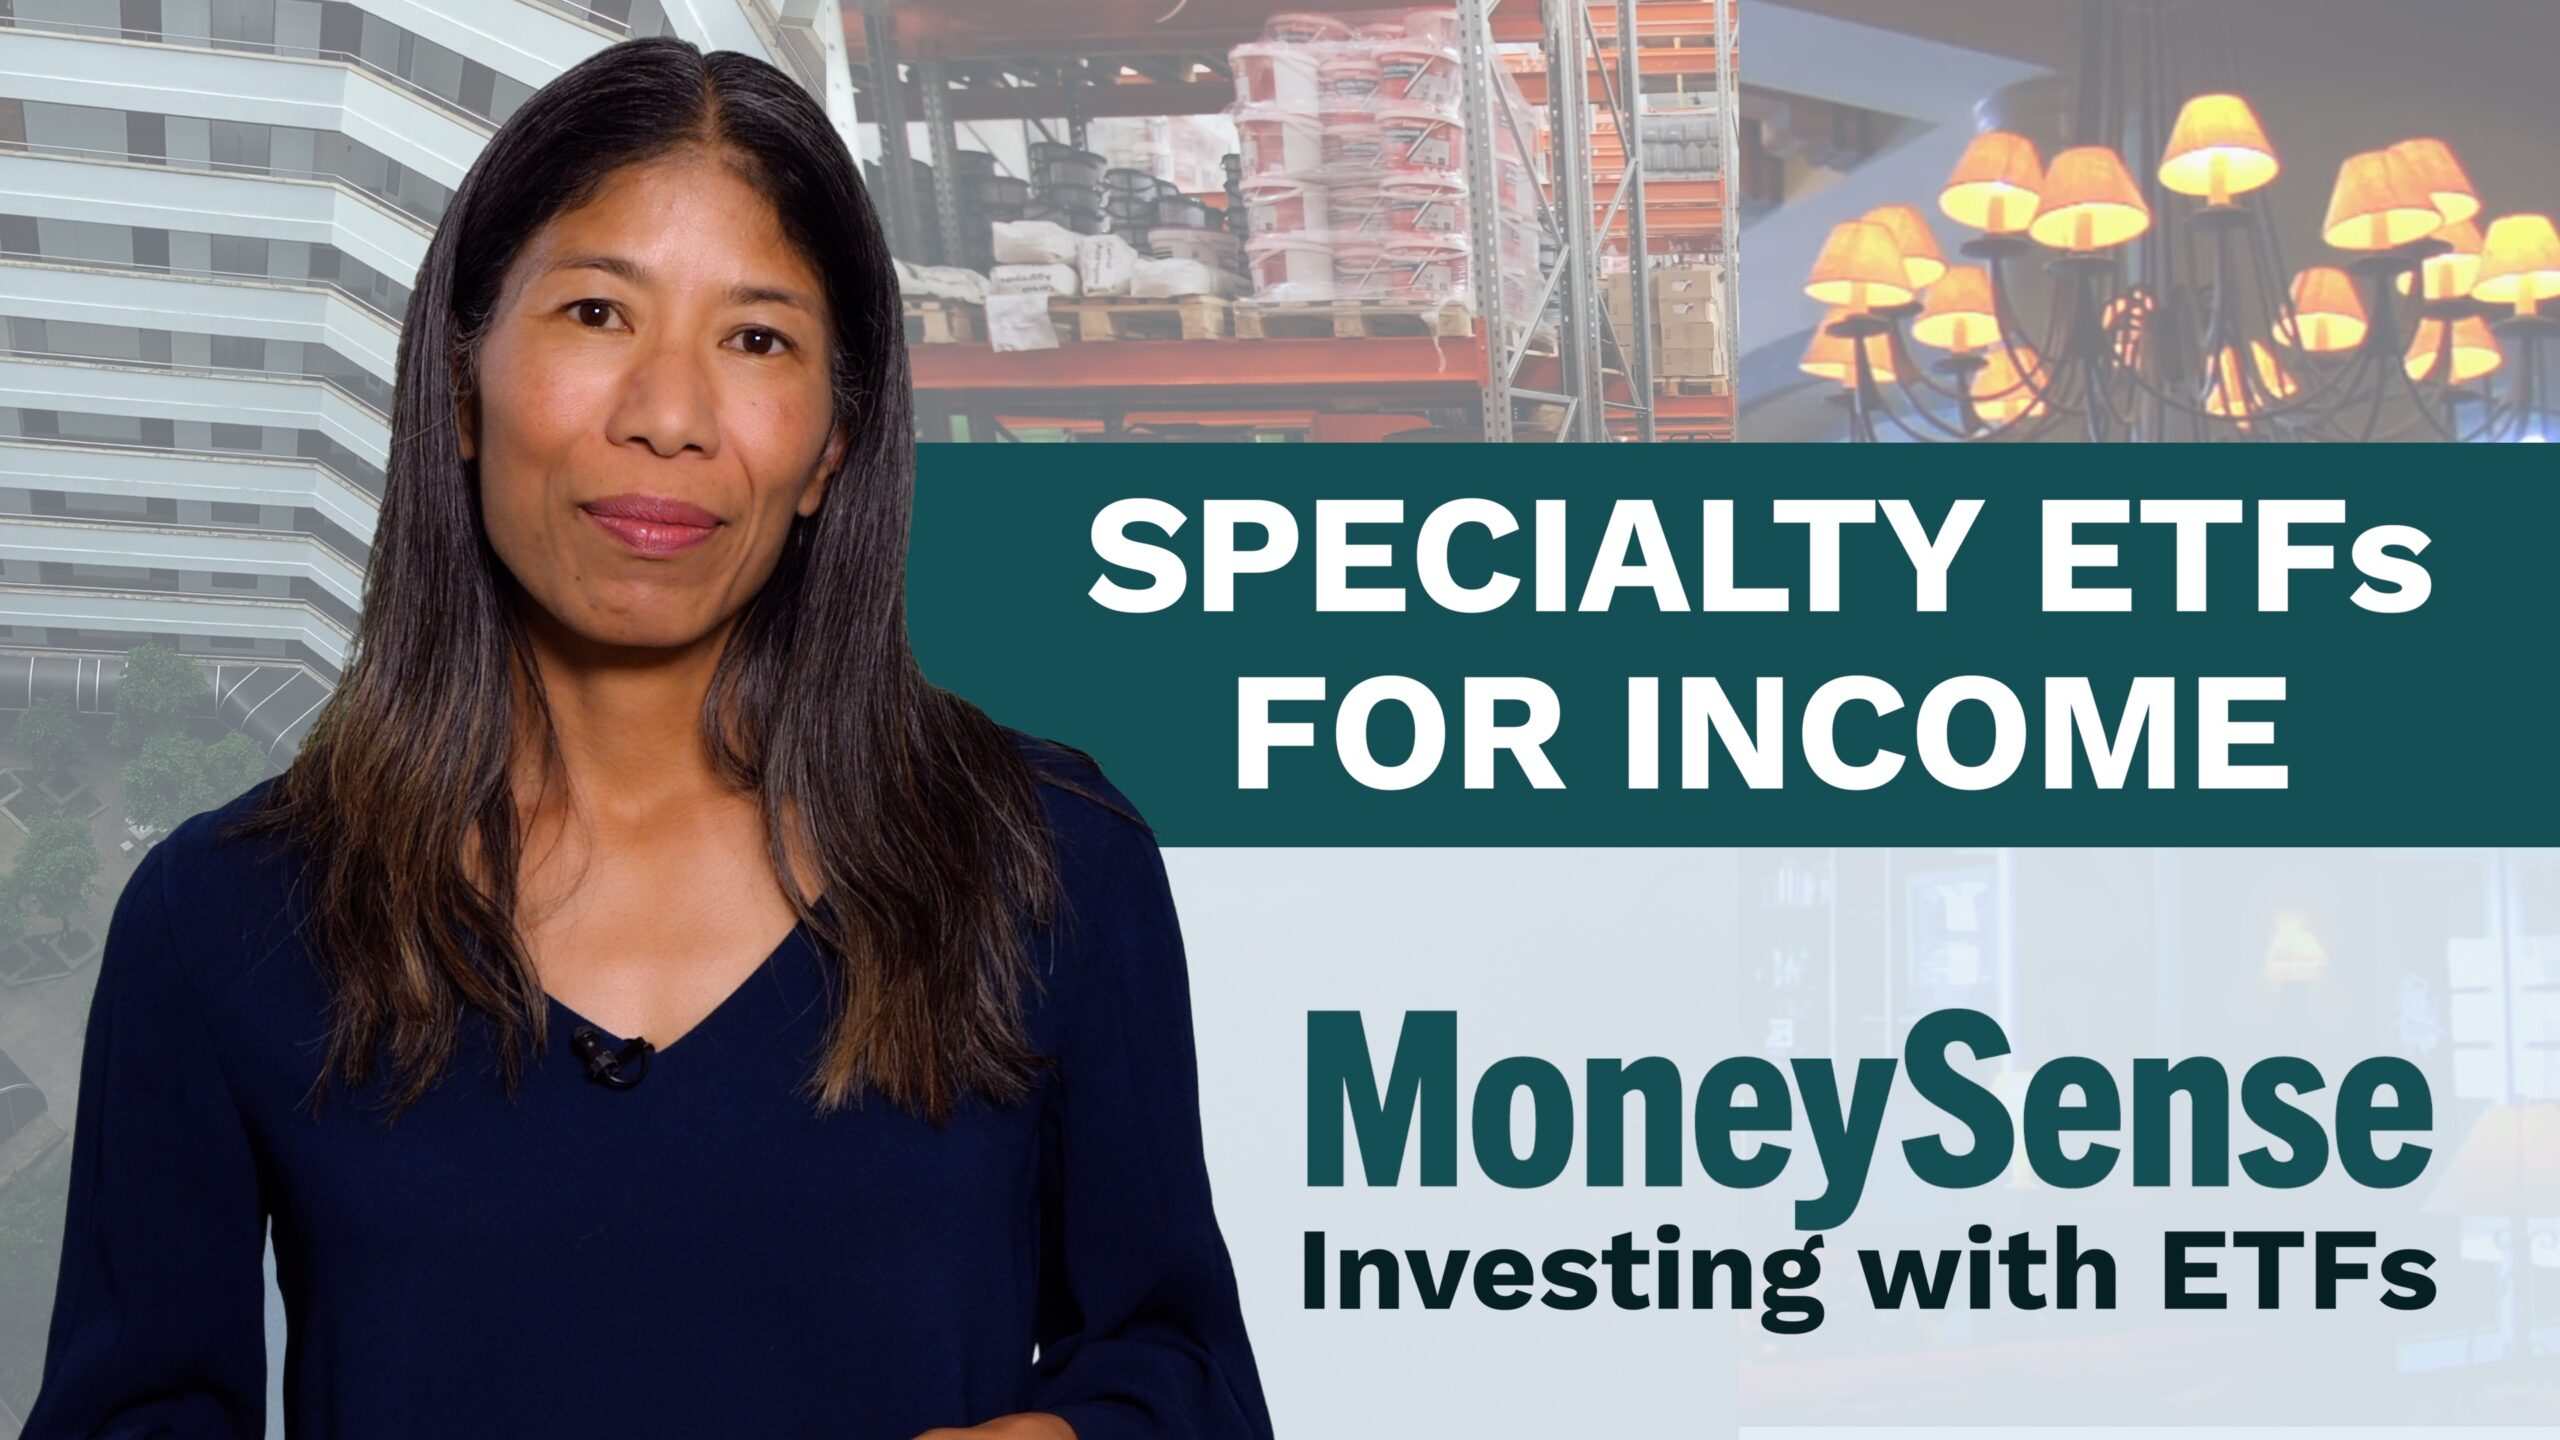 MoneySense editor discusses how to earn income with specialty ETFs